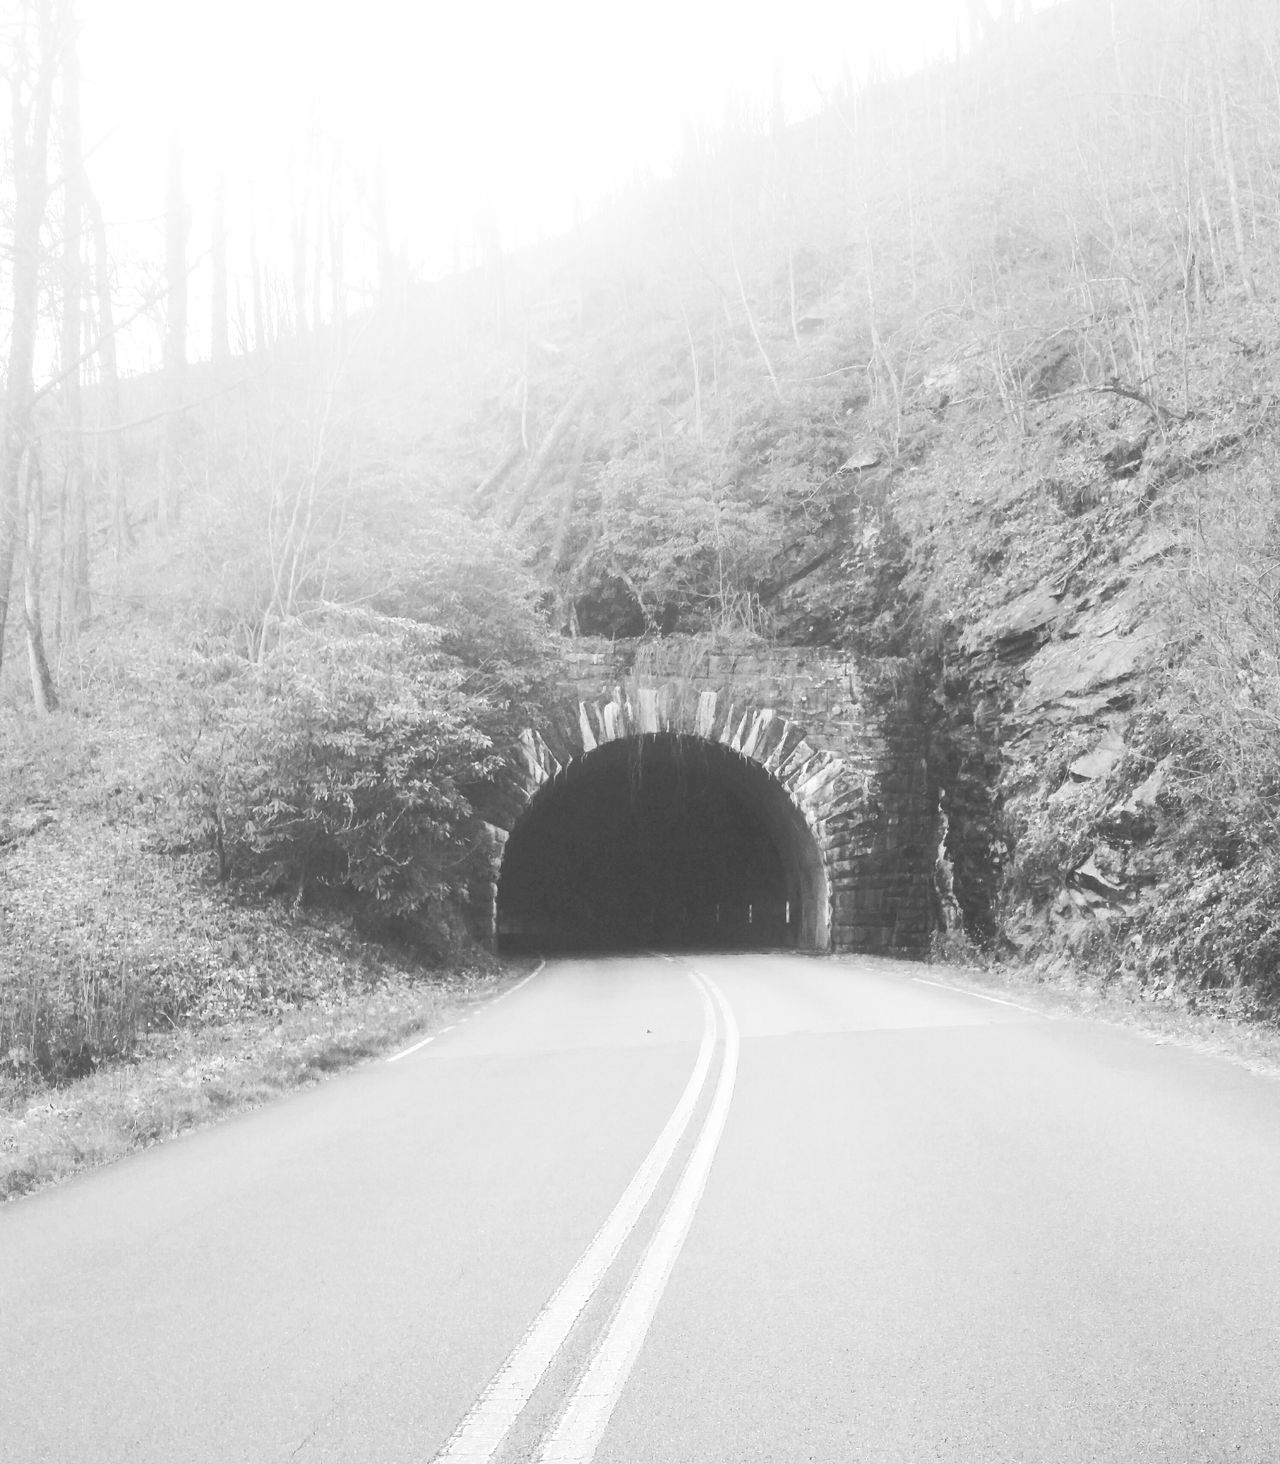 Tunnel love Tunnel Tunnel View Road Road Trip Traveling Travel Photography Blueridgeparkway Blueridgemountains Love Enjoying Life Taking Photos Beautiful Nature Nature Photography EyeEm Nature Lover Autumn Fall Blackandwhite Blackandwhite Photography